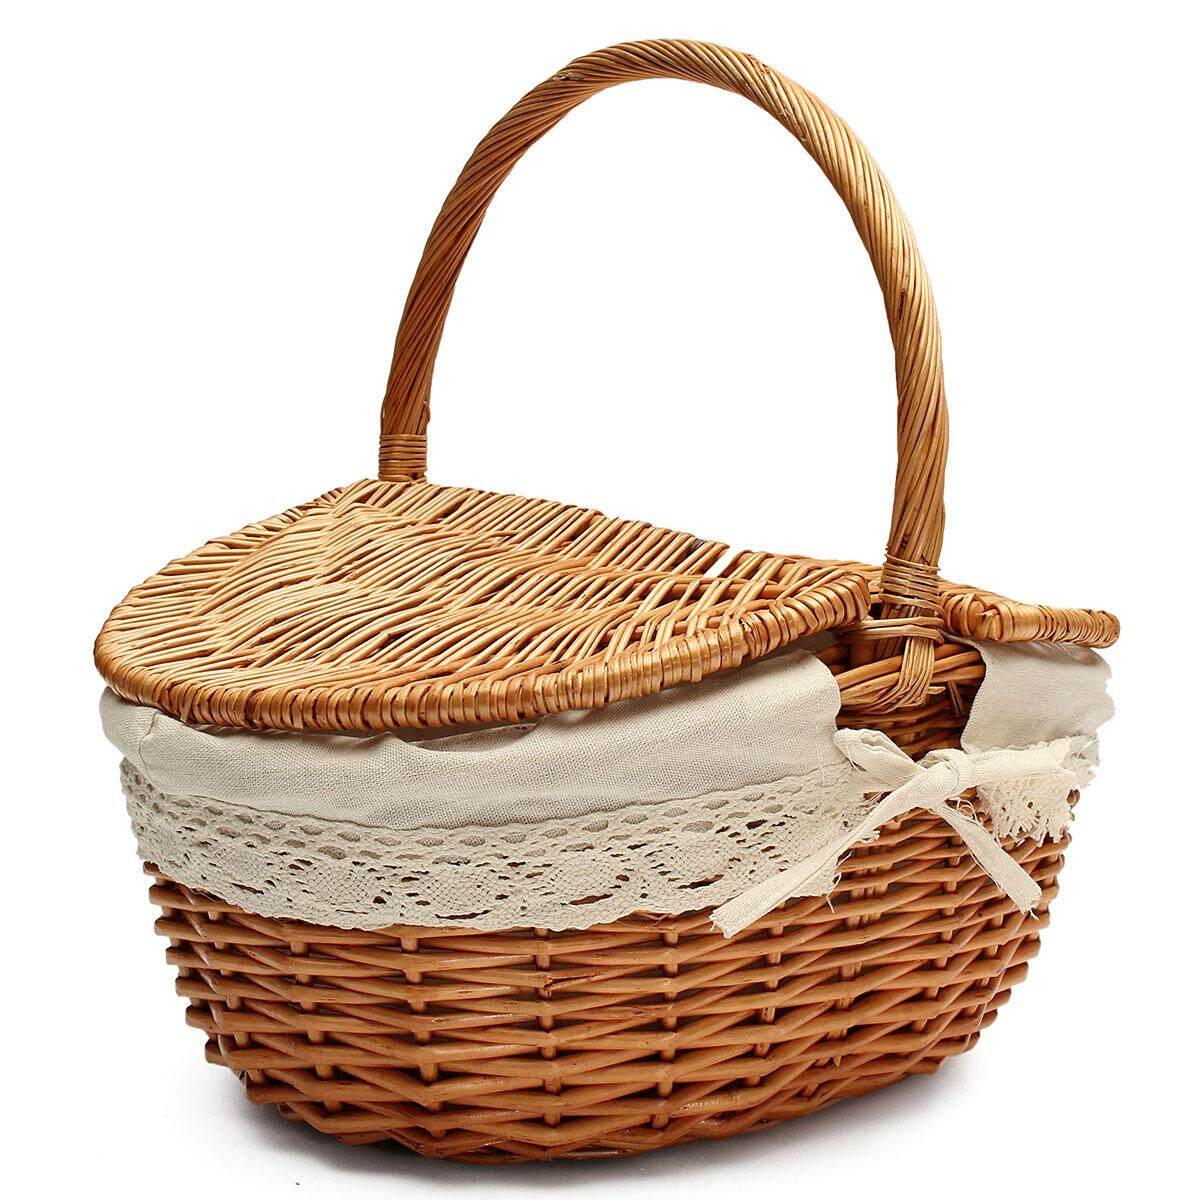 Up To 10kg Wicker Hand Picnic Storage Basket Shopping Hamper With Lid And Handle By Teamtop.